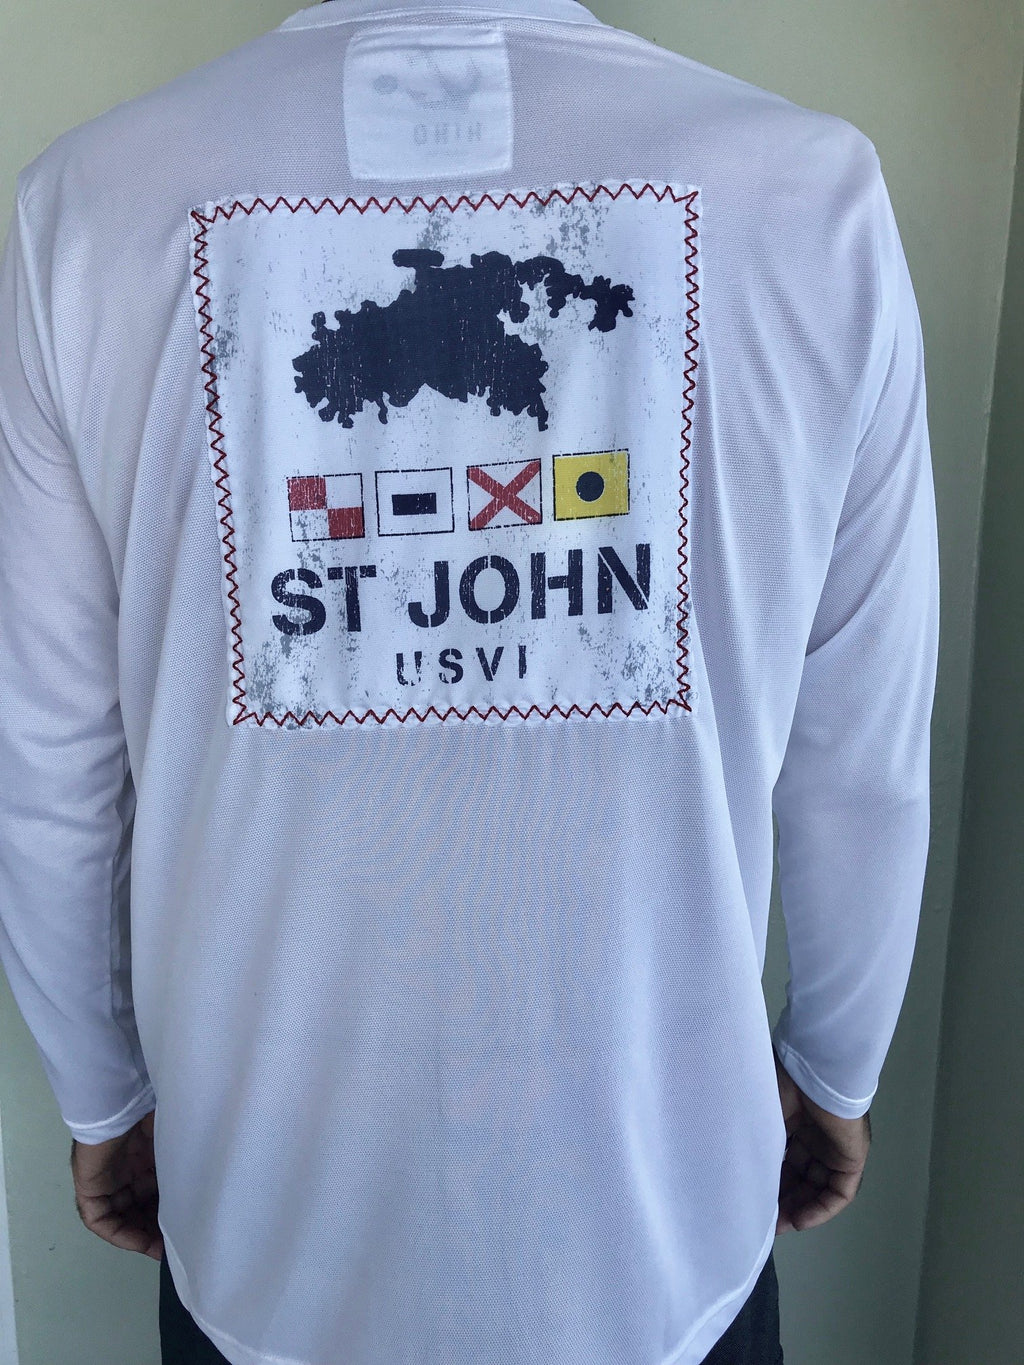 st john virgin islands UPF50 shirt with nautical flags